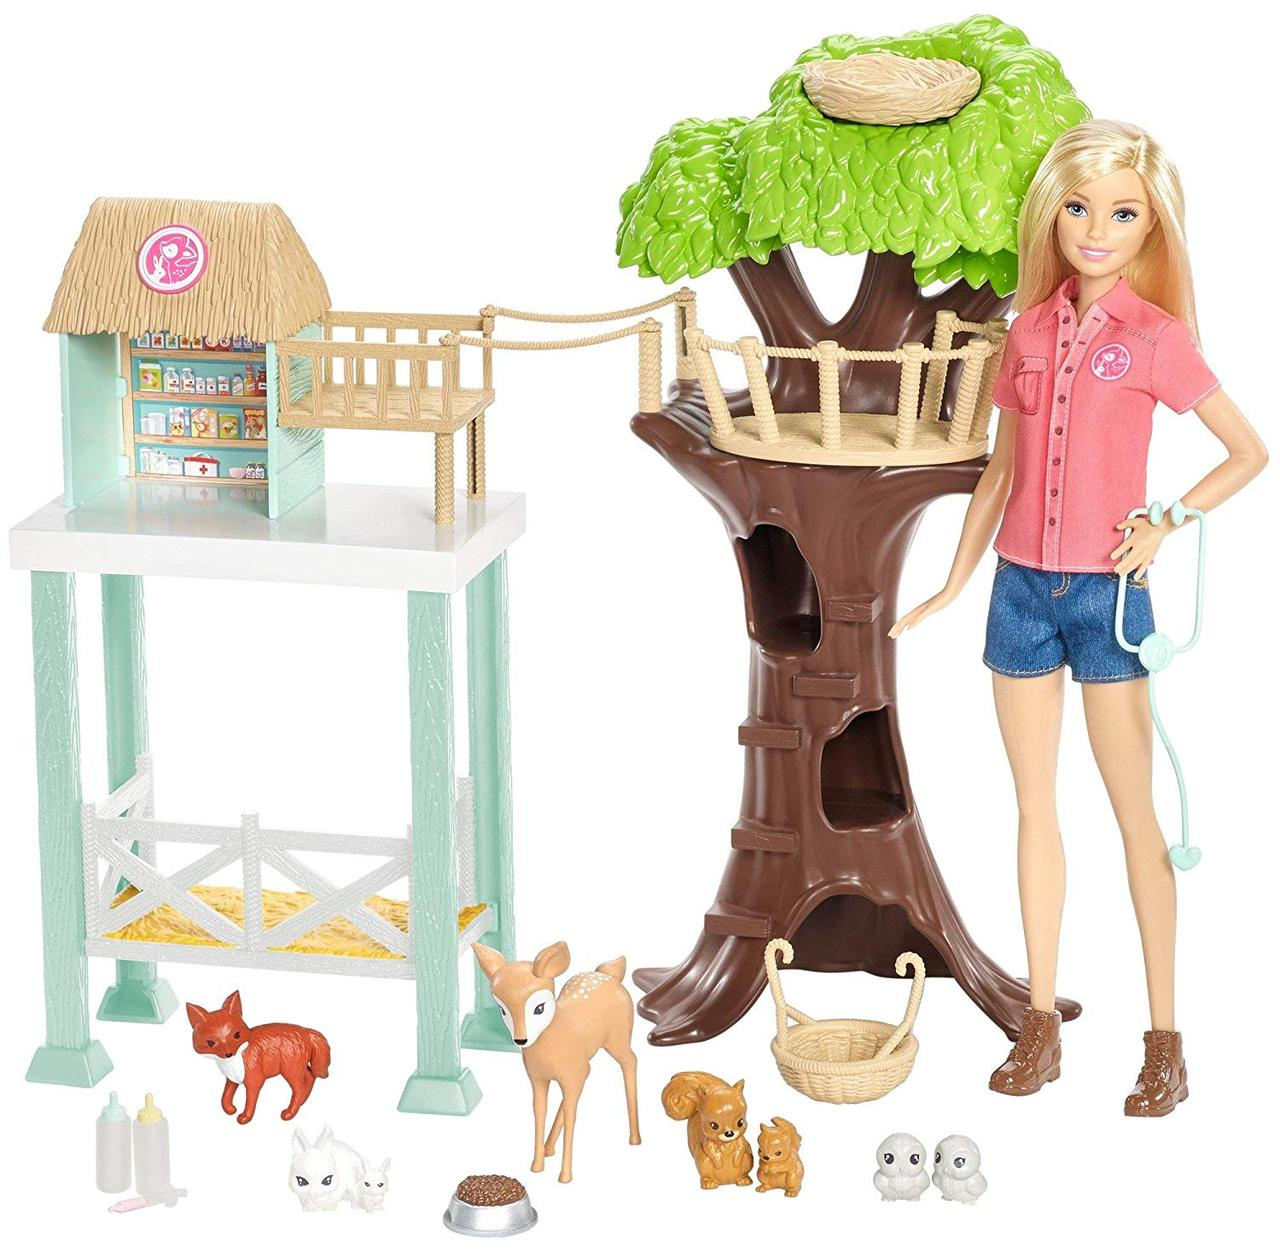 Кукла Барби Центр ухода за животными игровой набор Barbie Animal Rescuer Doll & Playset